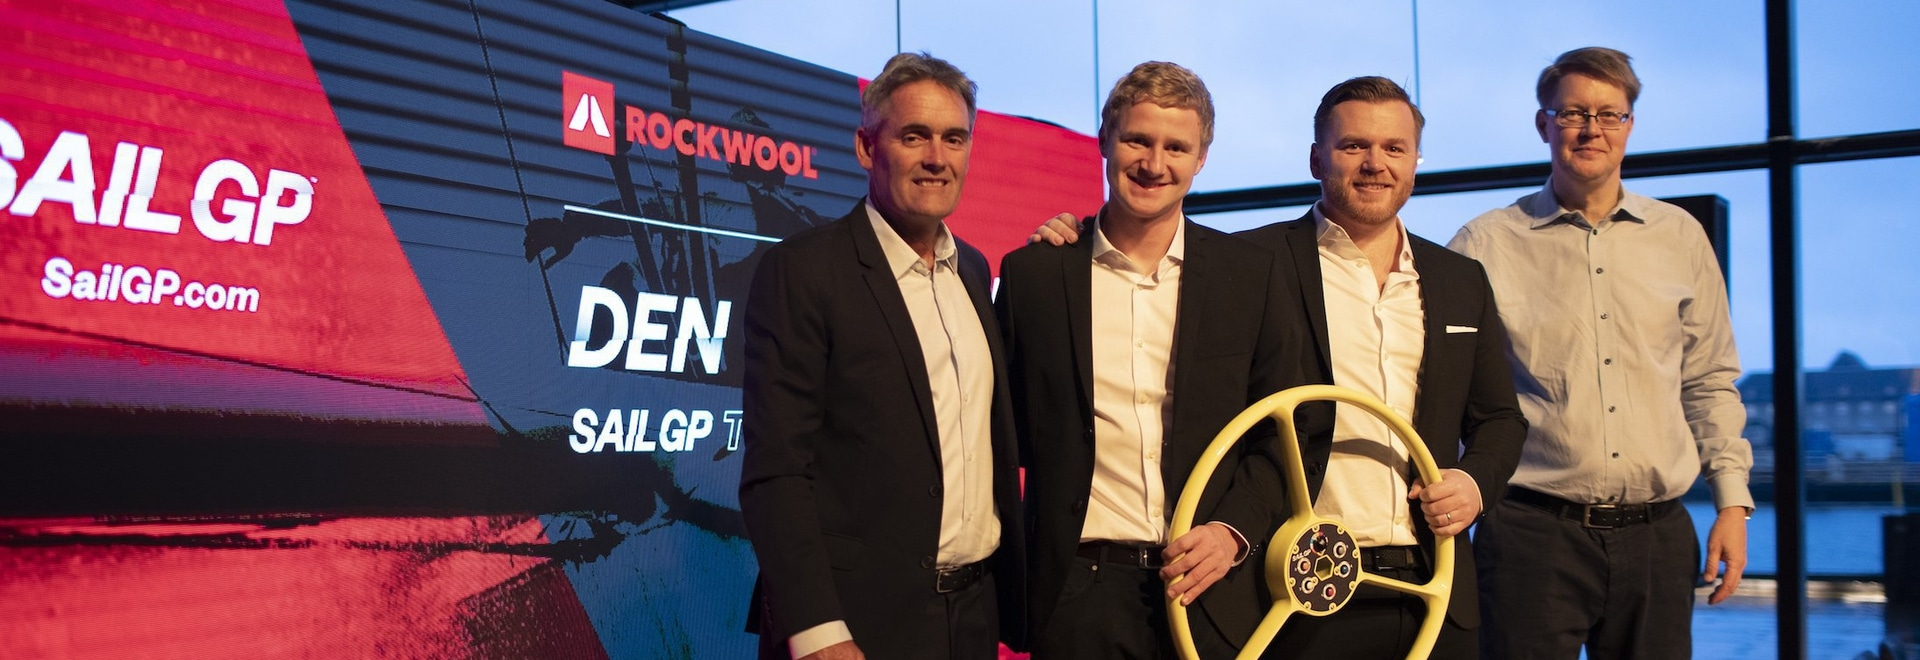 SailGP announces Denmark SailGP Team presented by ROCKWOOL to join world-class lineup for Season 2